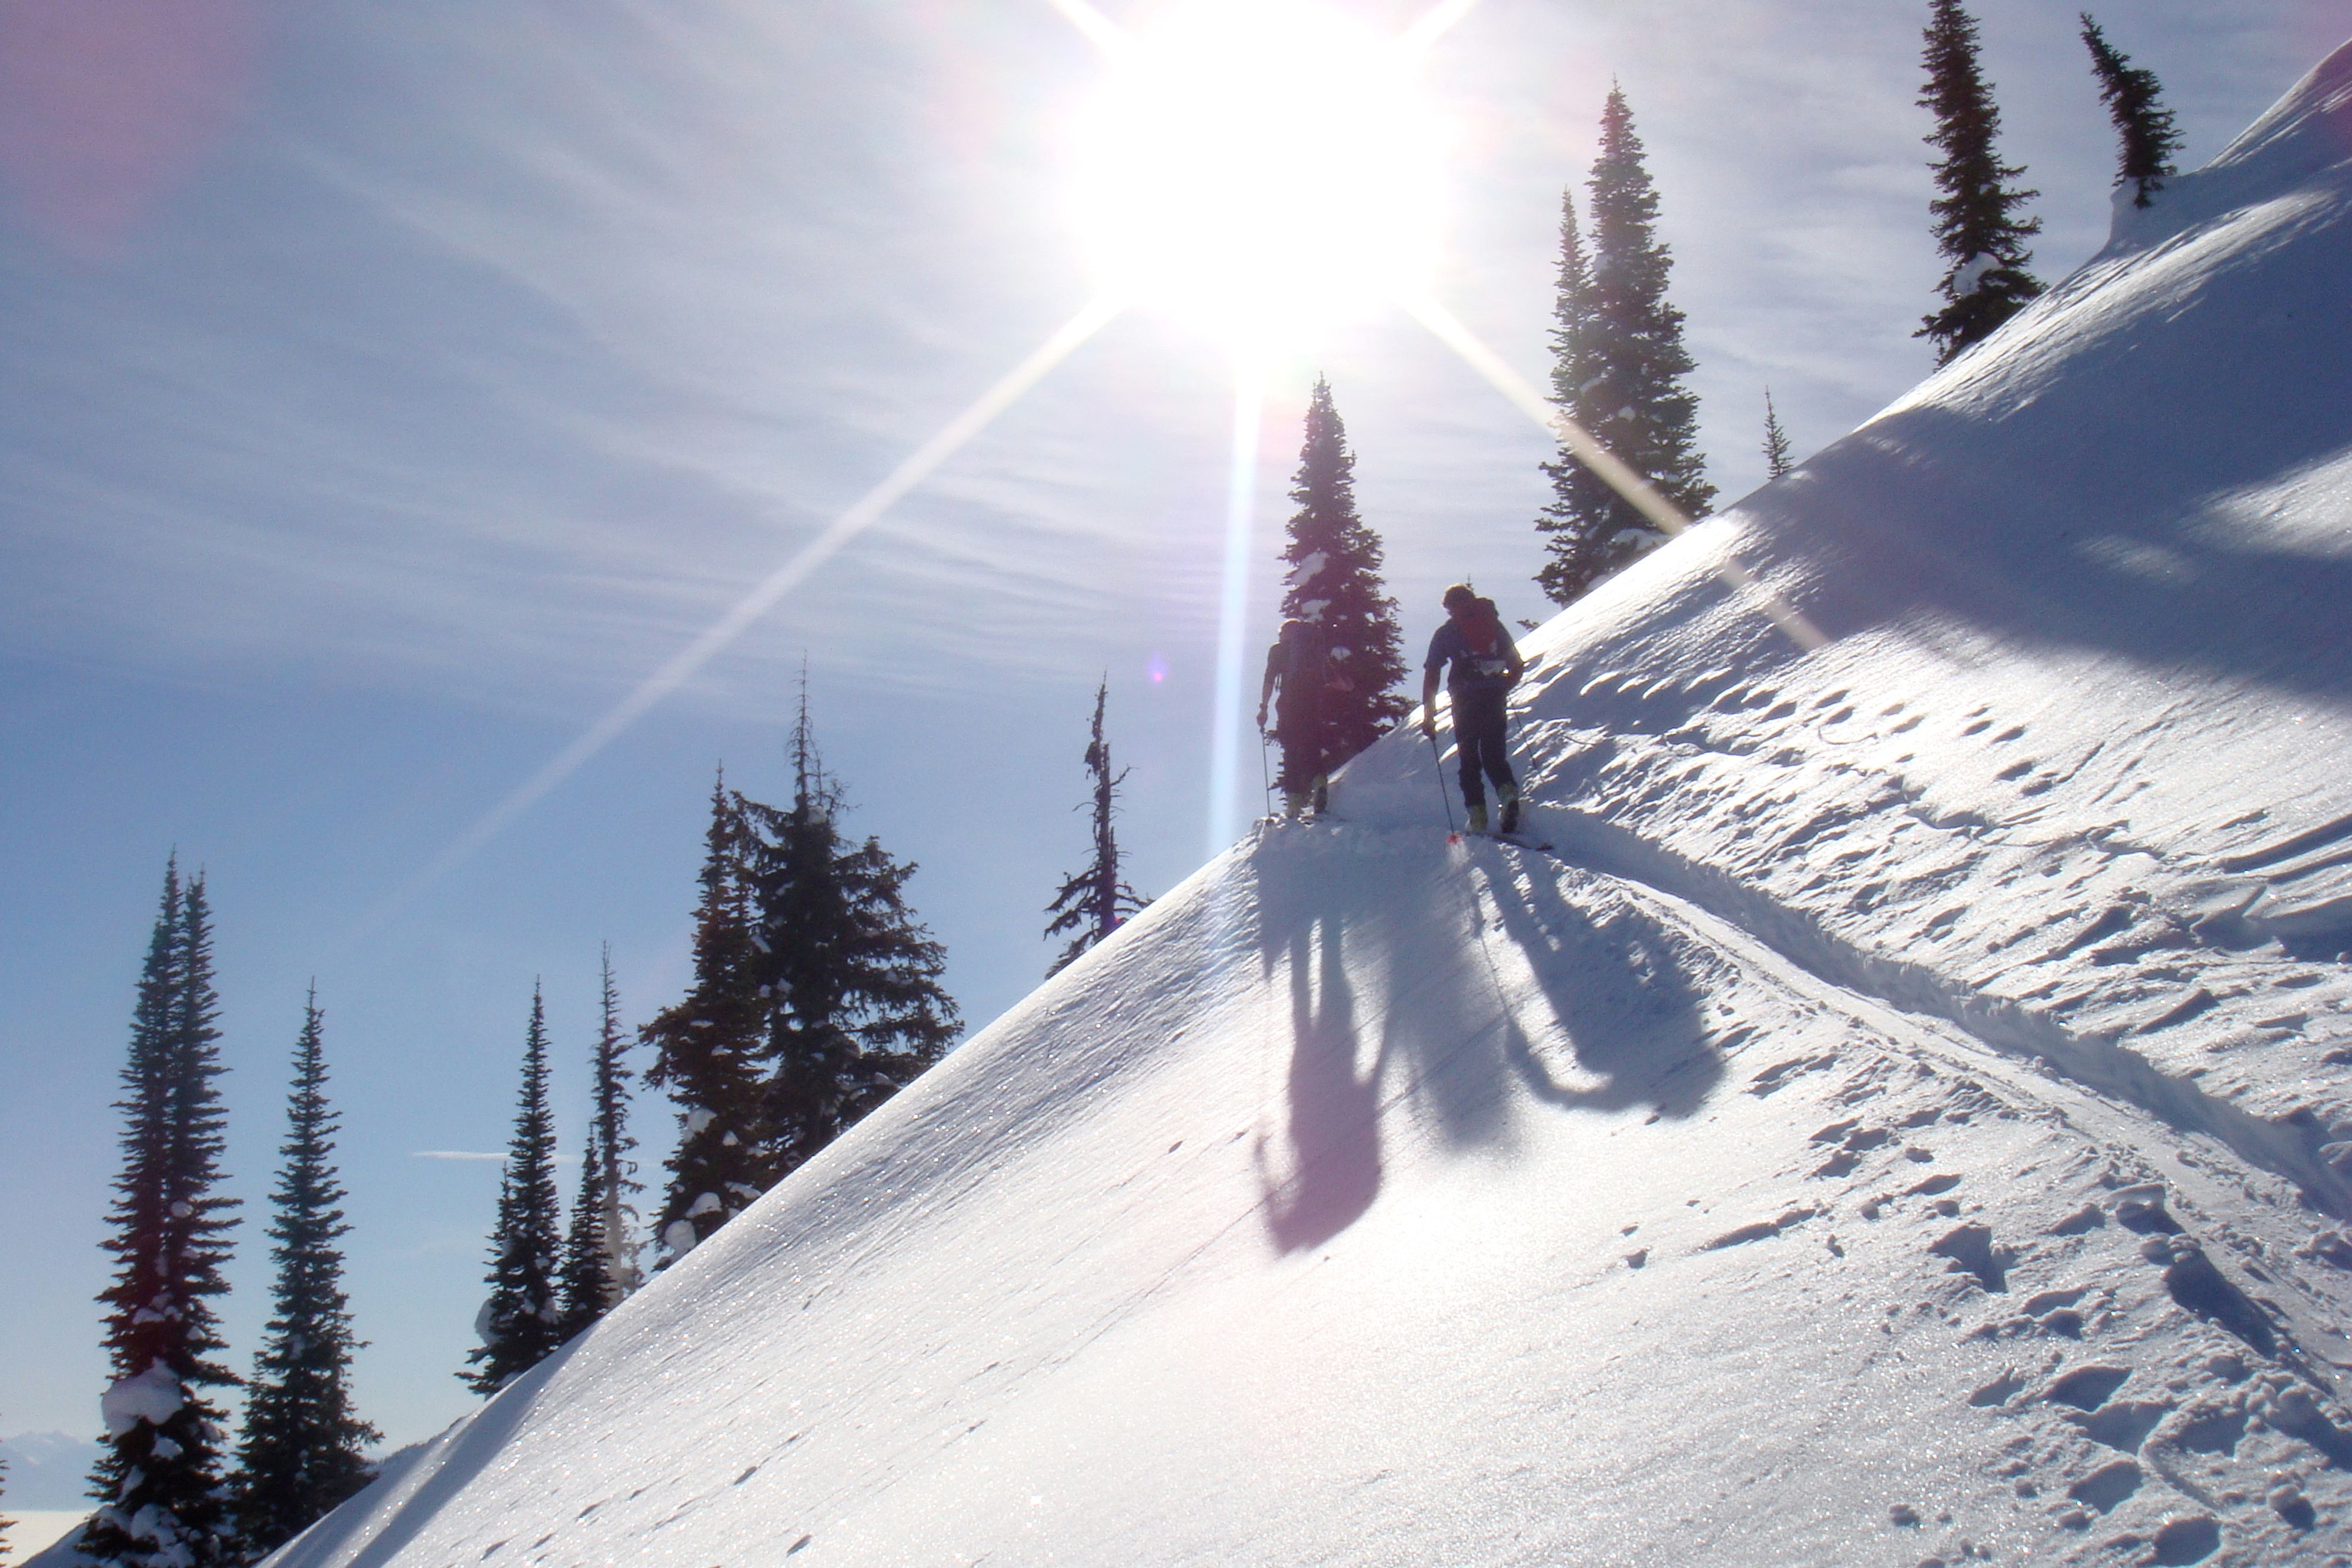 Skier walking on slope under sun